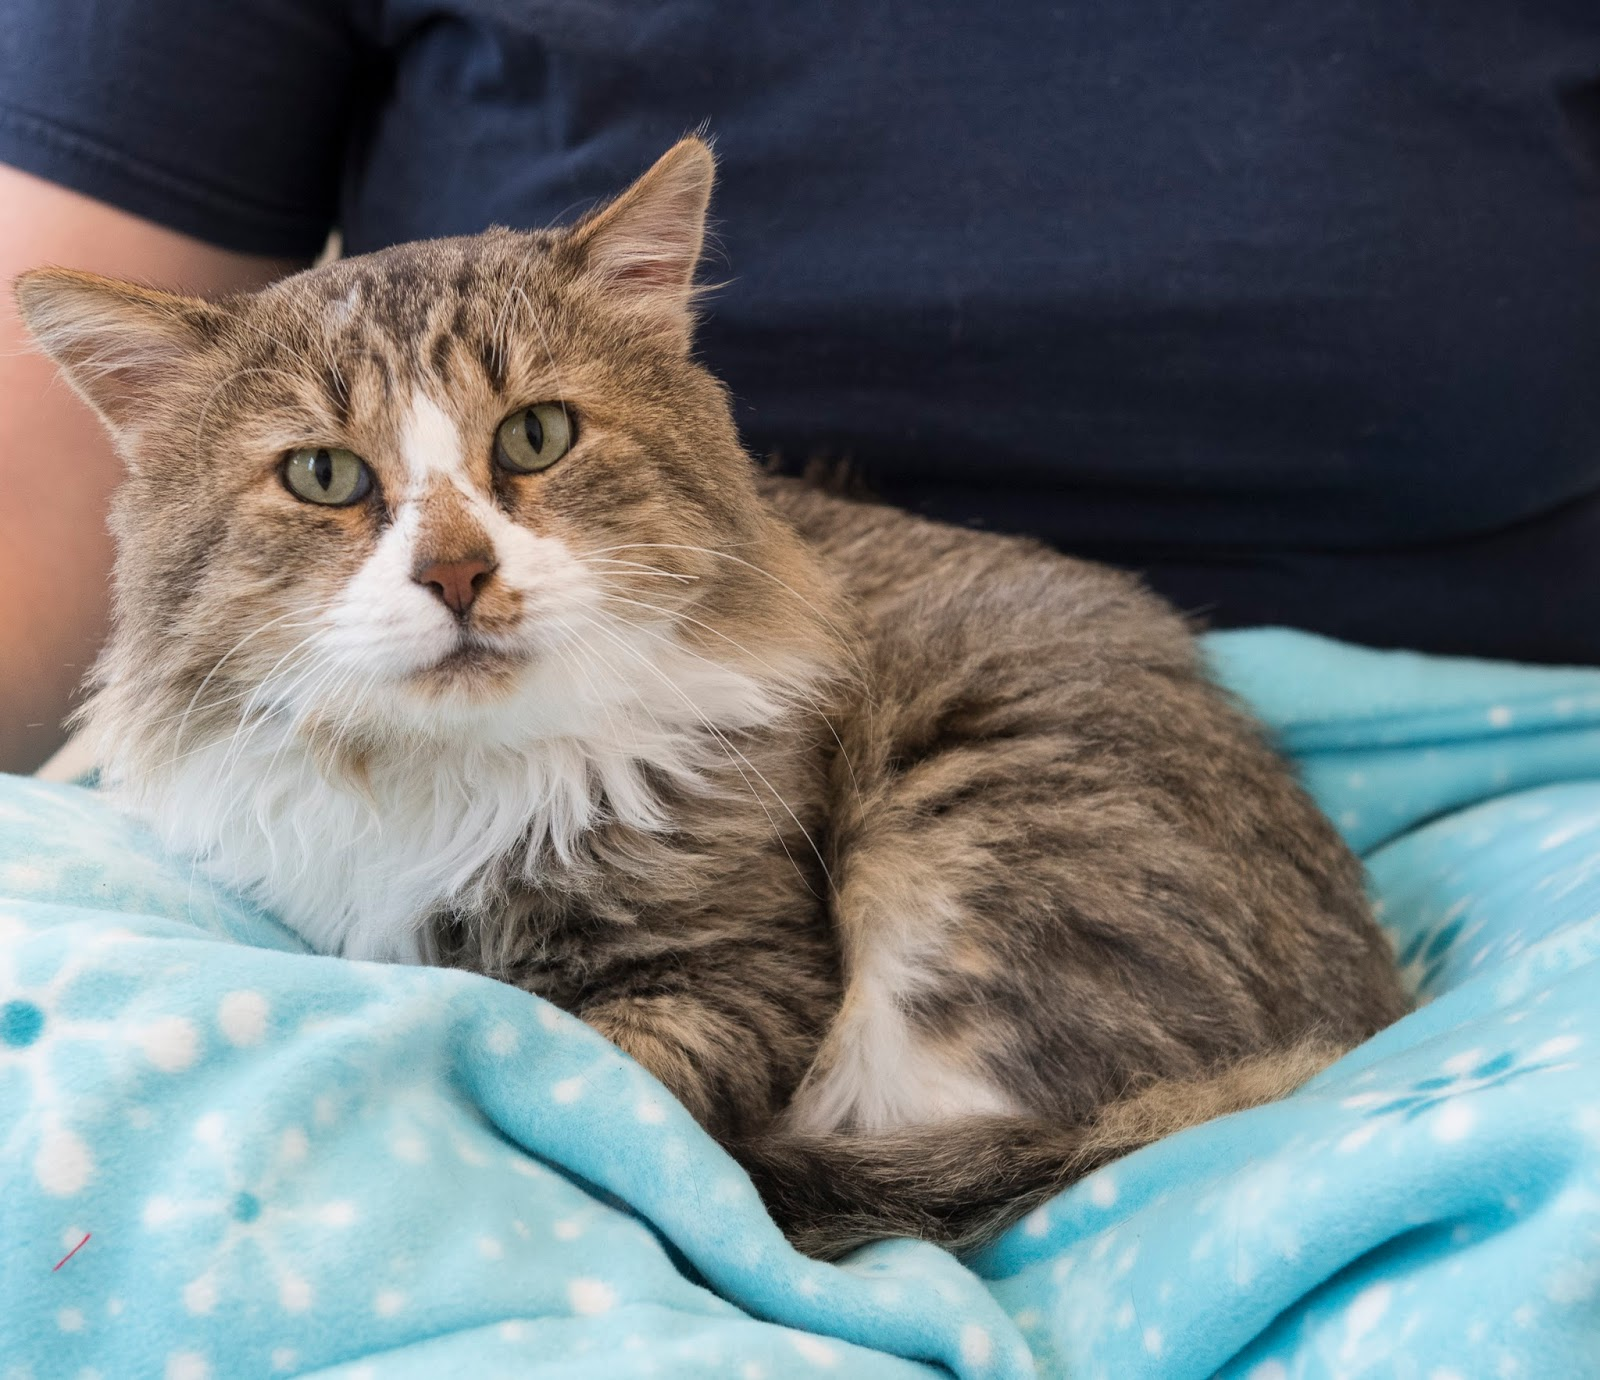 Feline Rescue Cat Tales: Keeping Your Cats Calm With